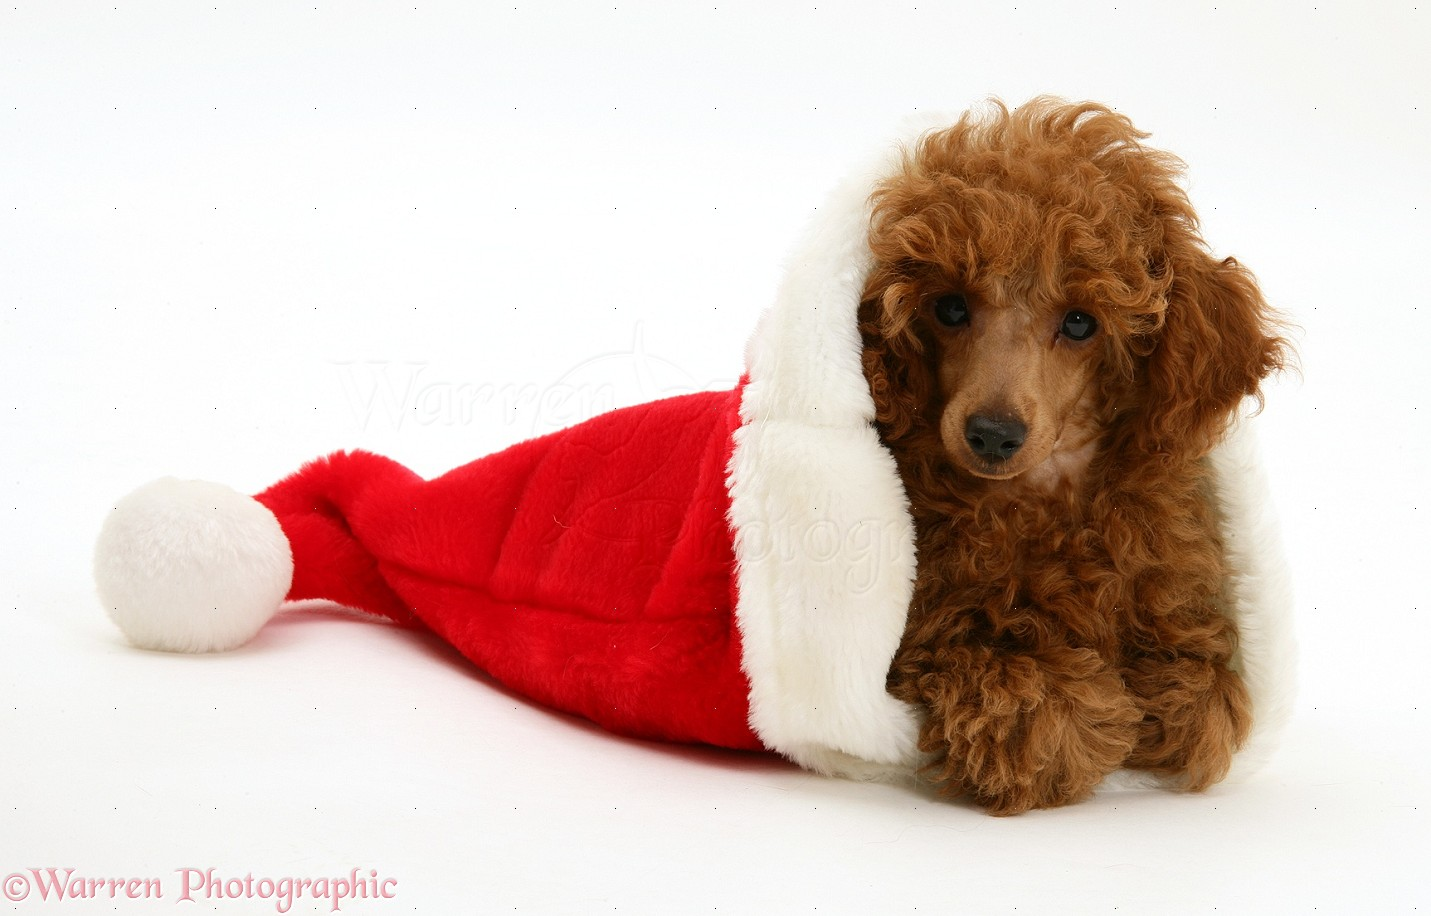 dog red toy poodle pup in a santa hat photo   wp17207